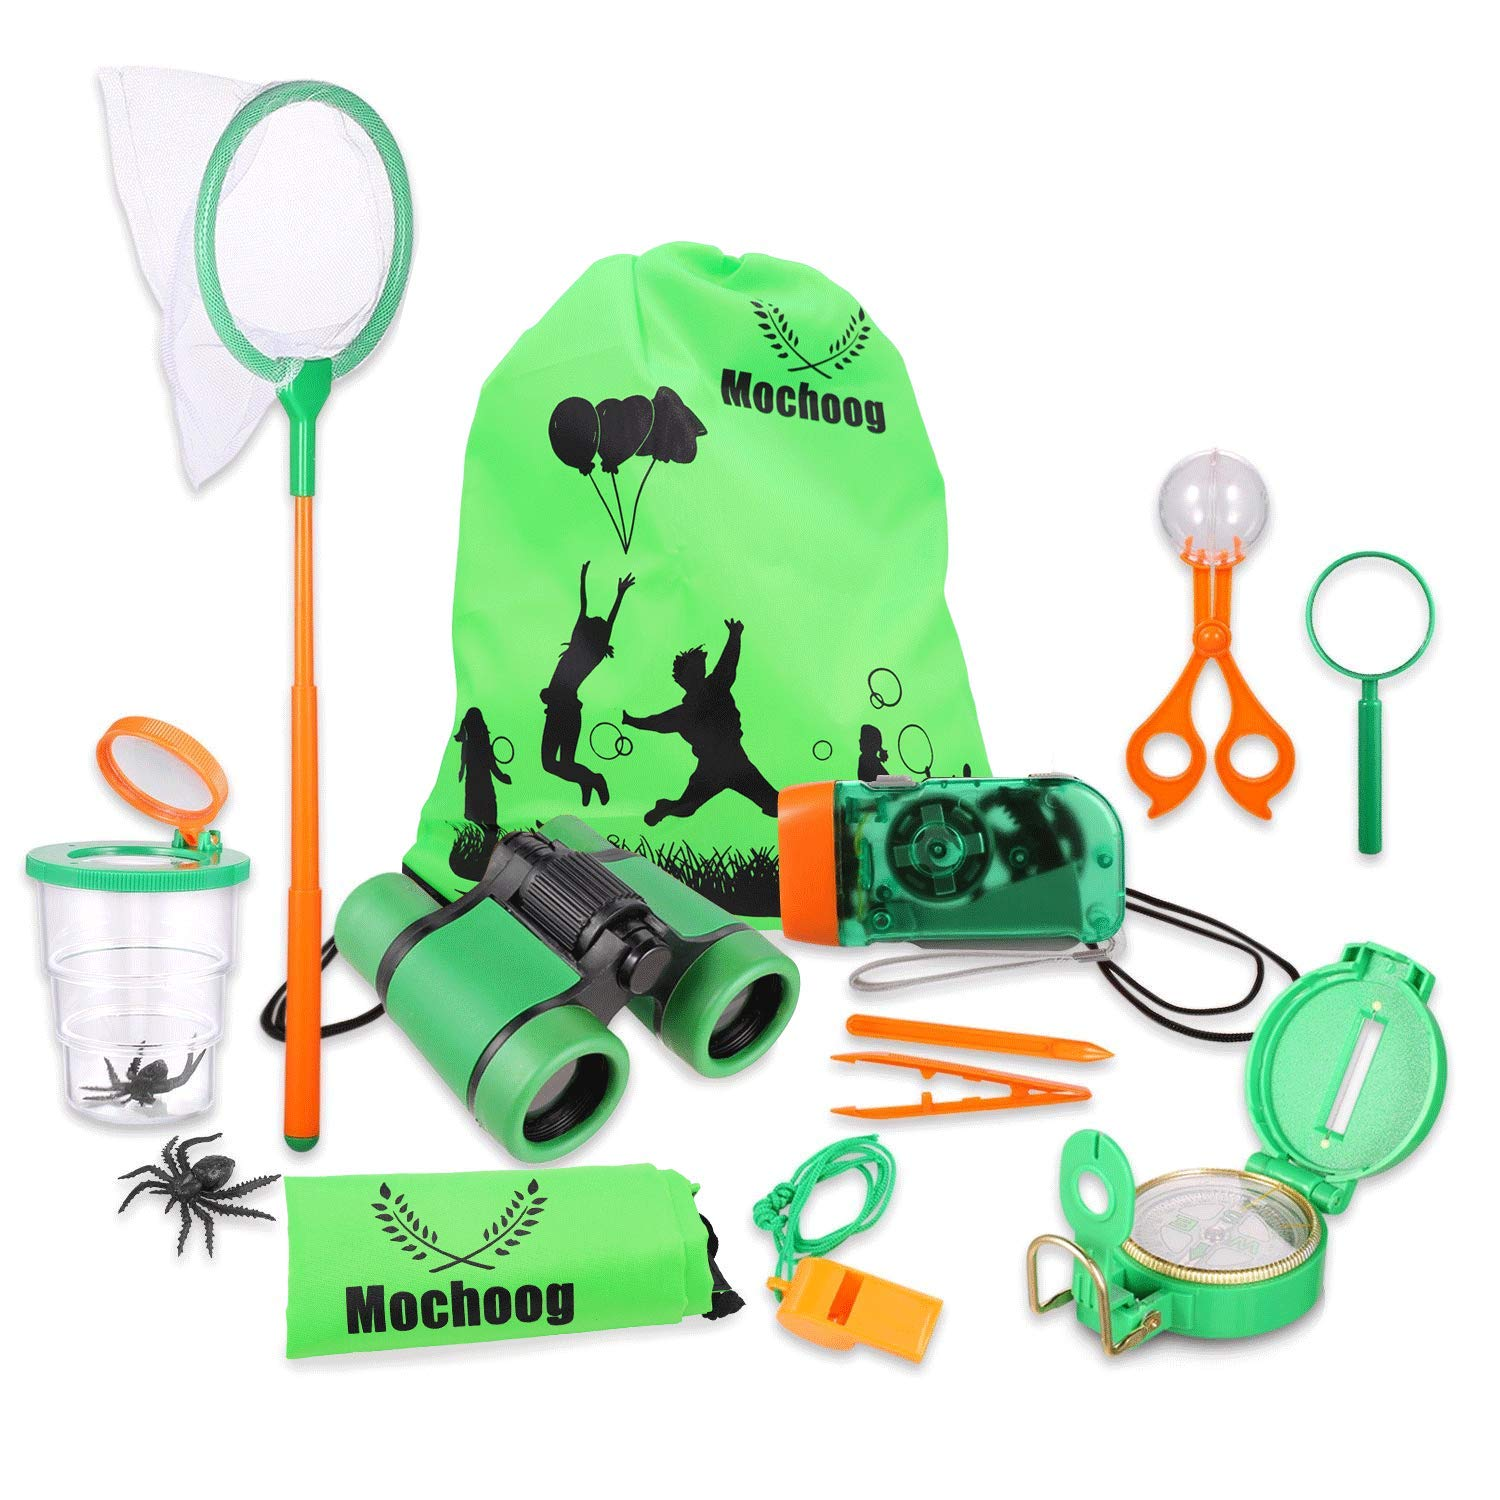 Mochoog Outdoor Explorer Kit for Kids - STEM Educational Exploration Bug Catcher - Binoculars, Flashlight, Compass, Magnifying Glass, Butterfly Net etc, Gift Set for Backyards Camping Hiking by Mochoog